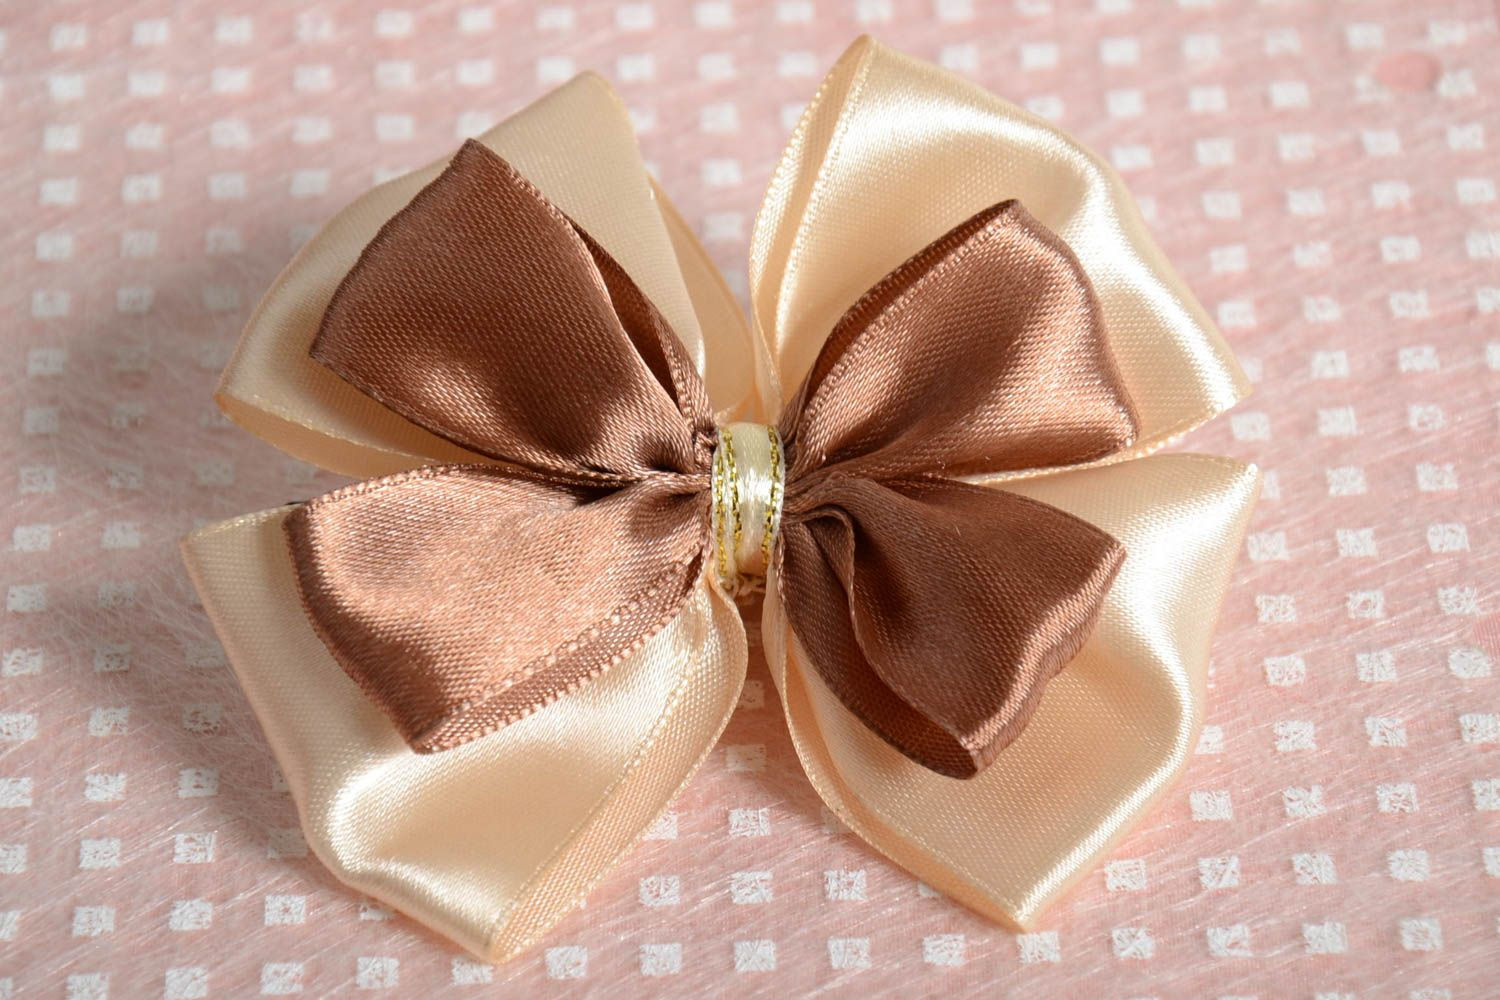 Handmade unusual hair clip accessory in shape of bow stylish satin hair clip photo 1